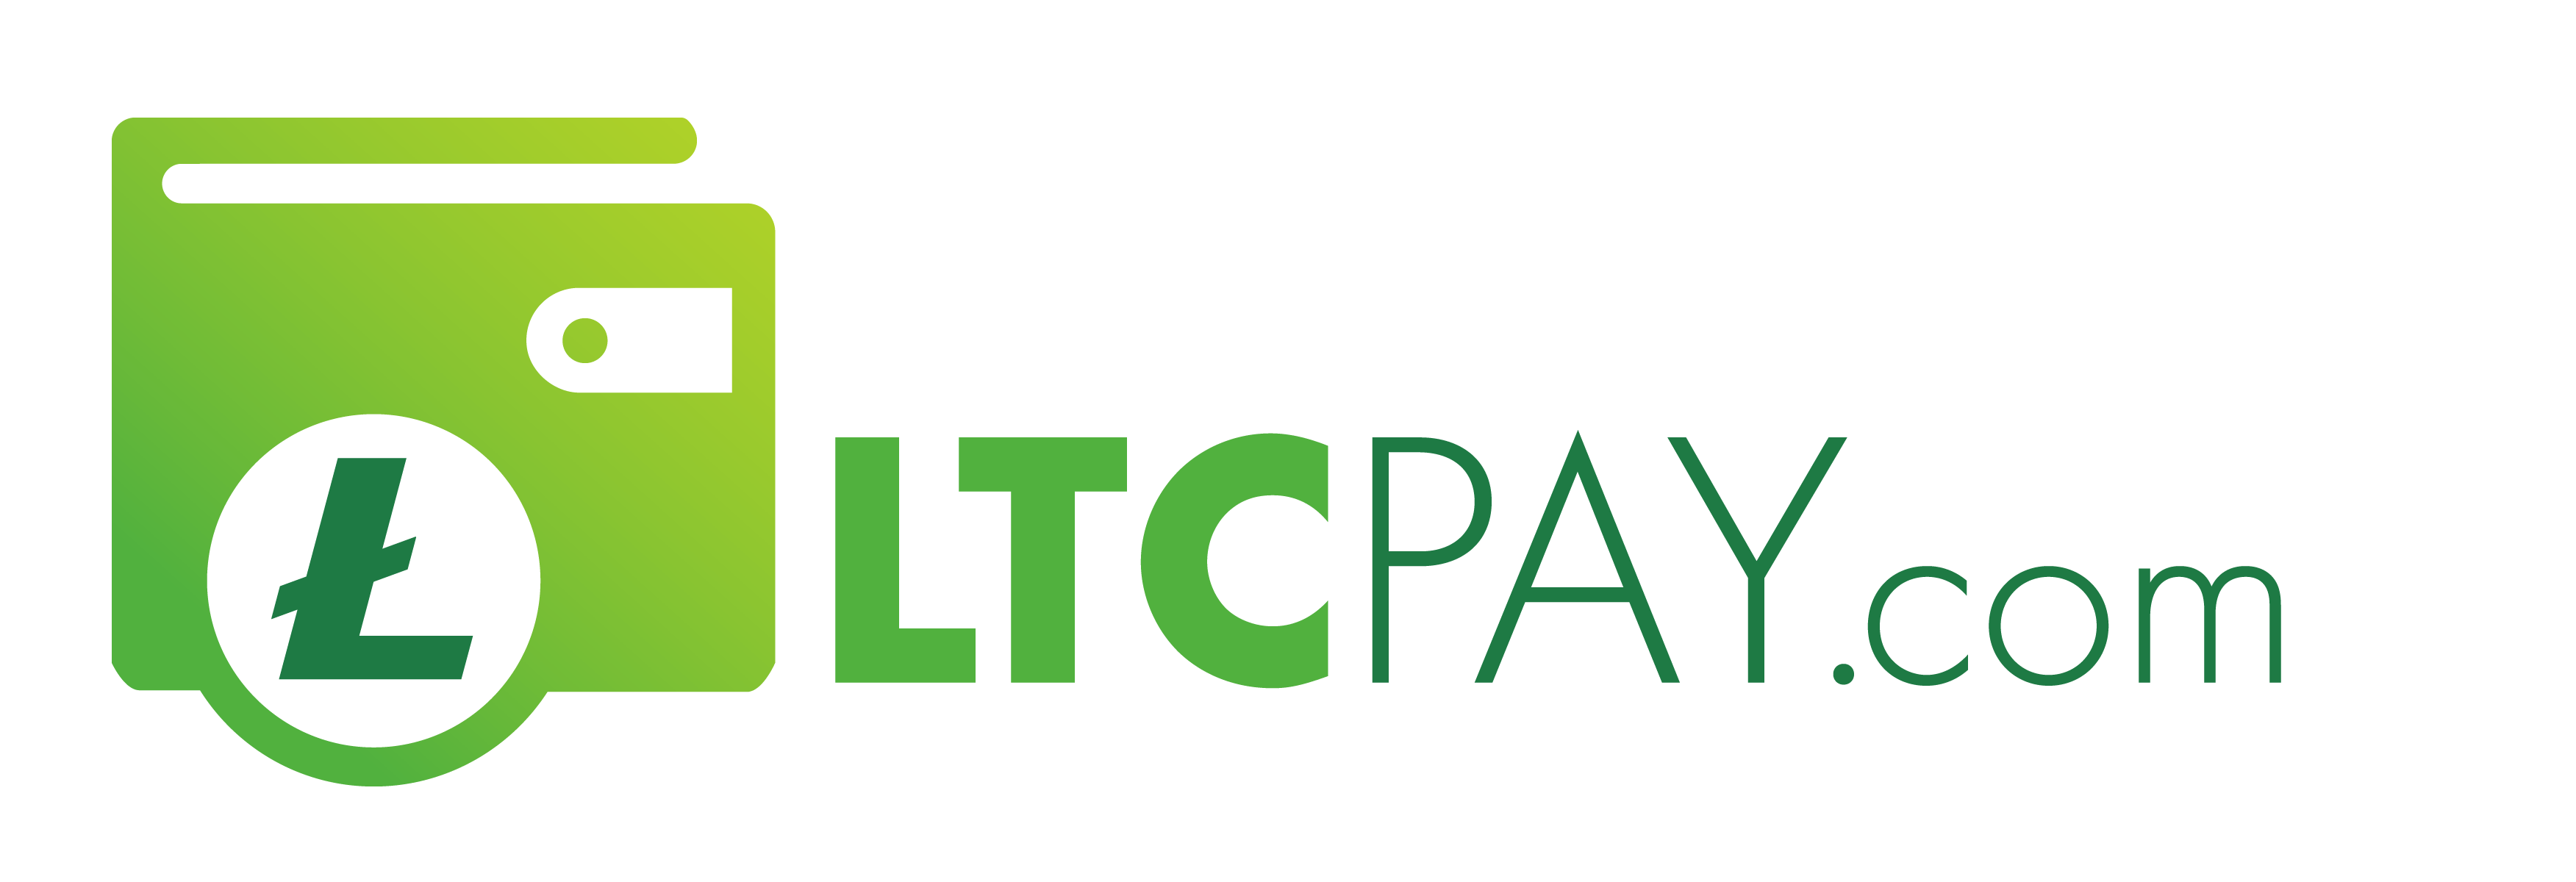 LTCPay